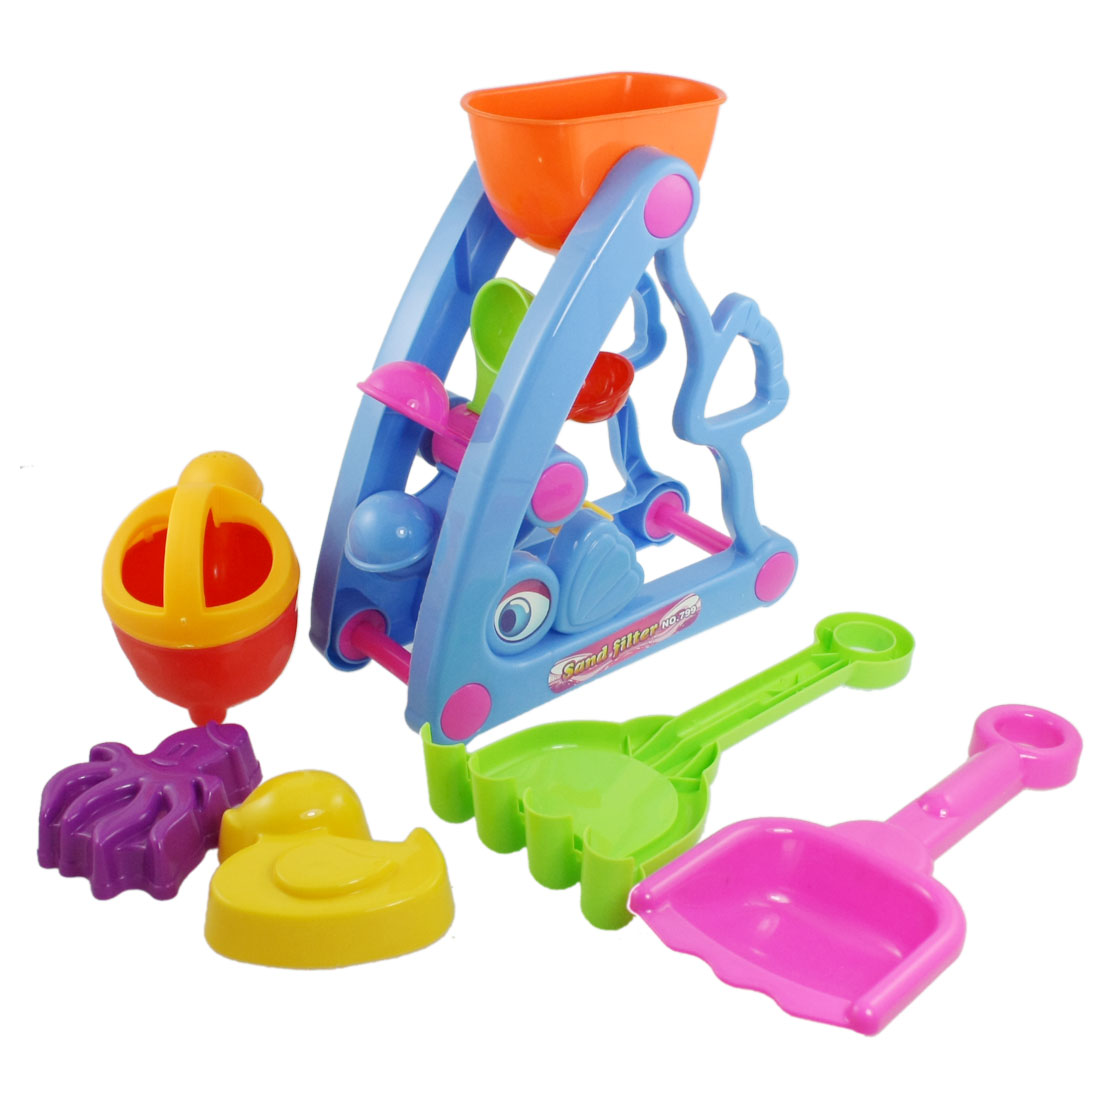 Plastic-Shovel-Duck-Octopus-Shape-Sand-Mold-Beach-Toy-Set-for-Child